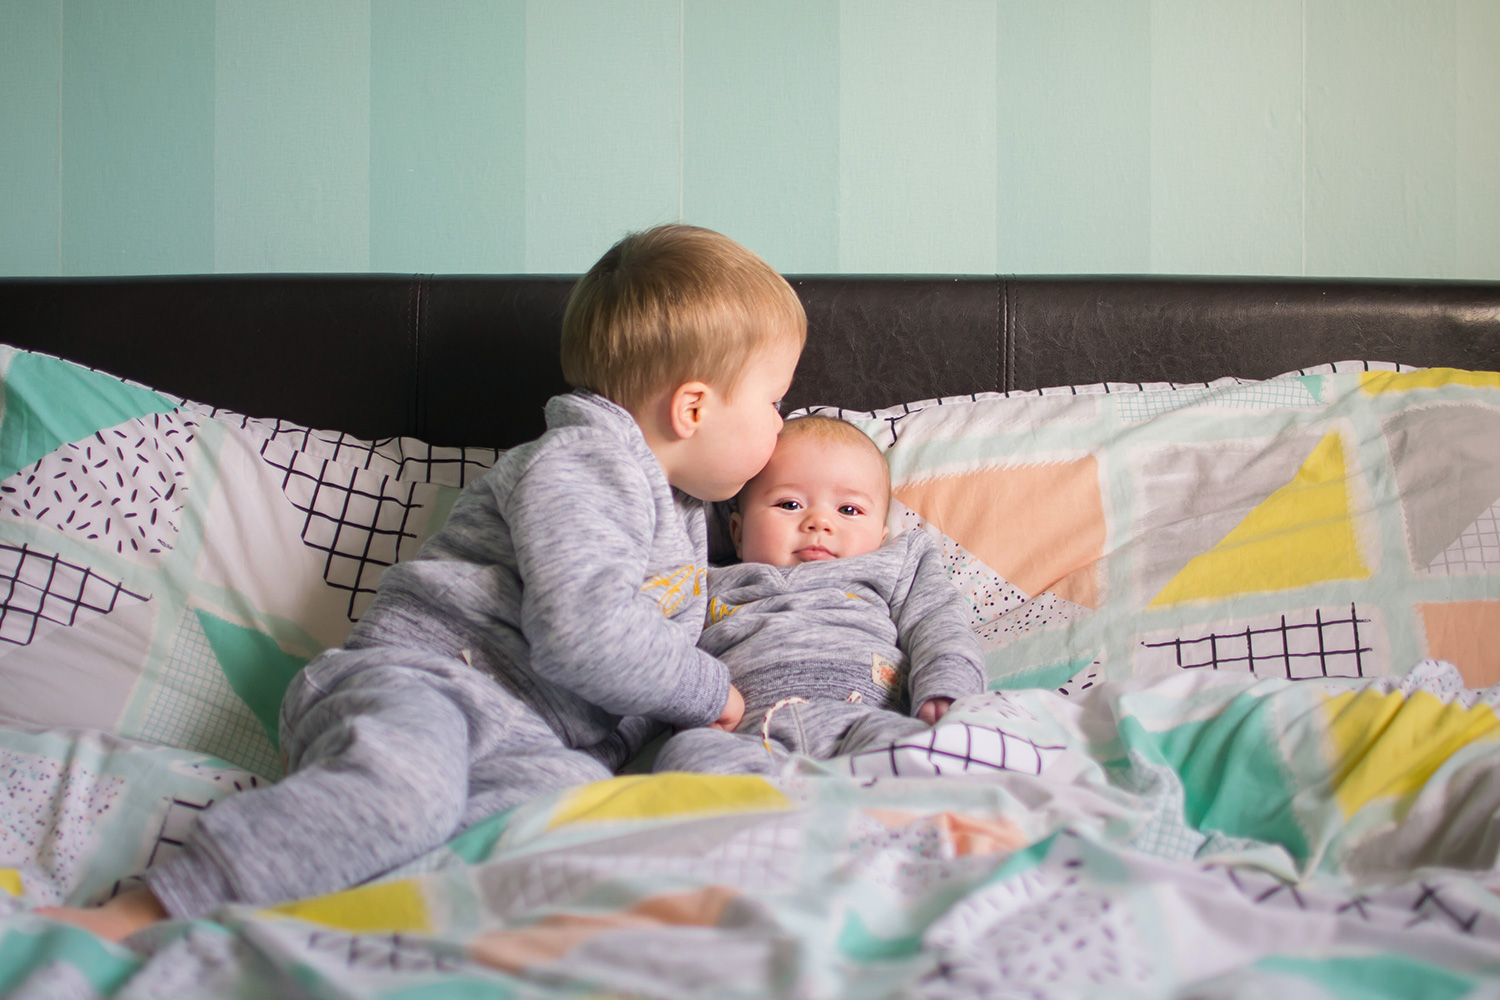 The Siblings Project {January 2017} - 4 month old baby boy and his two year old brother smiling, laughing and holding hands together wearing Mothercare Christmas cracker sleepsuit and racecar Gap pyjamas in the siblings project